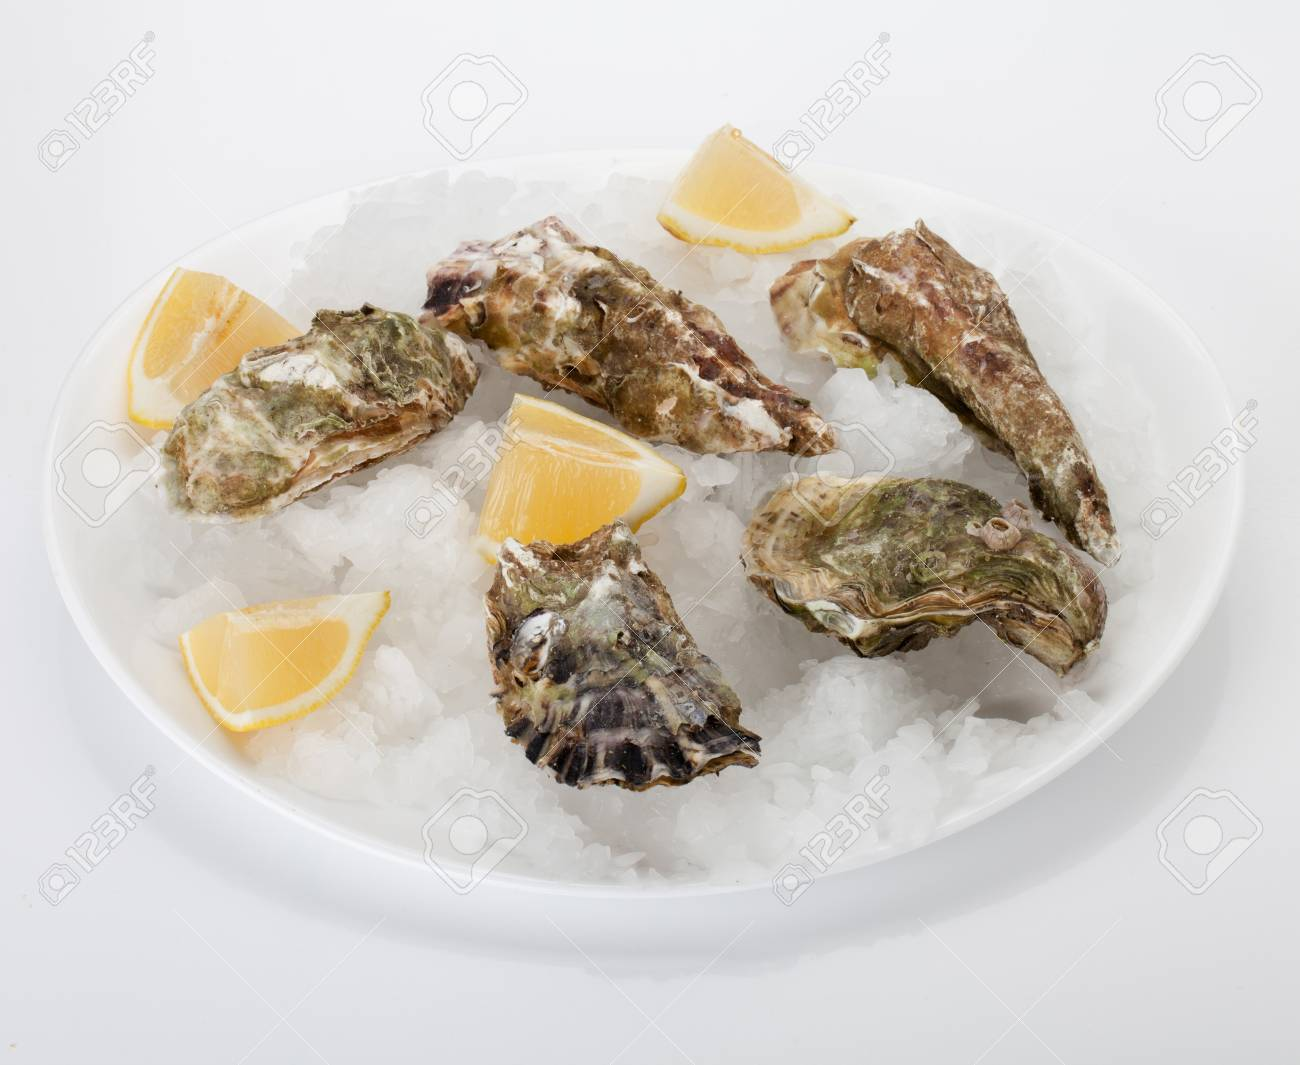 Oyster with lemon on ice Stock Photo - 8801760